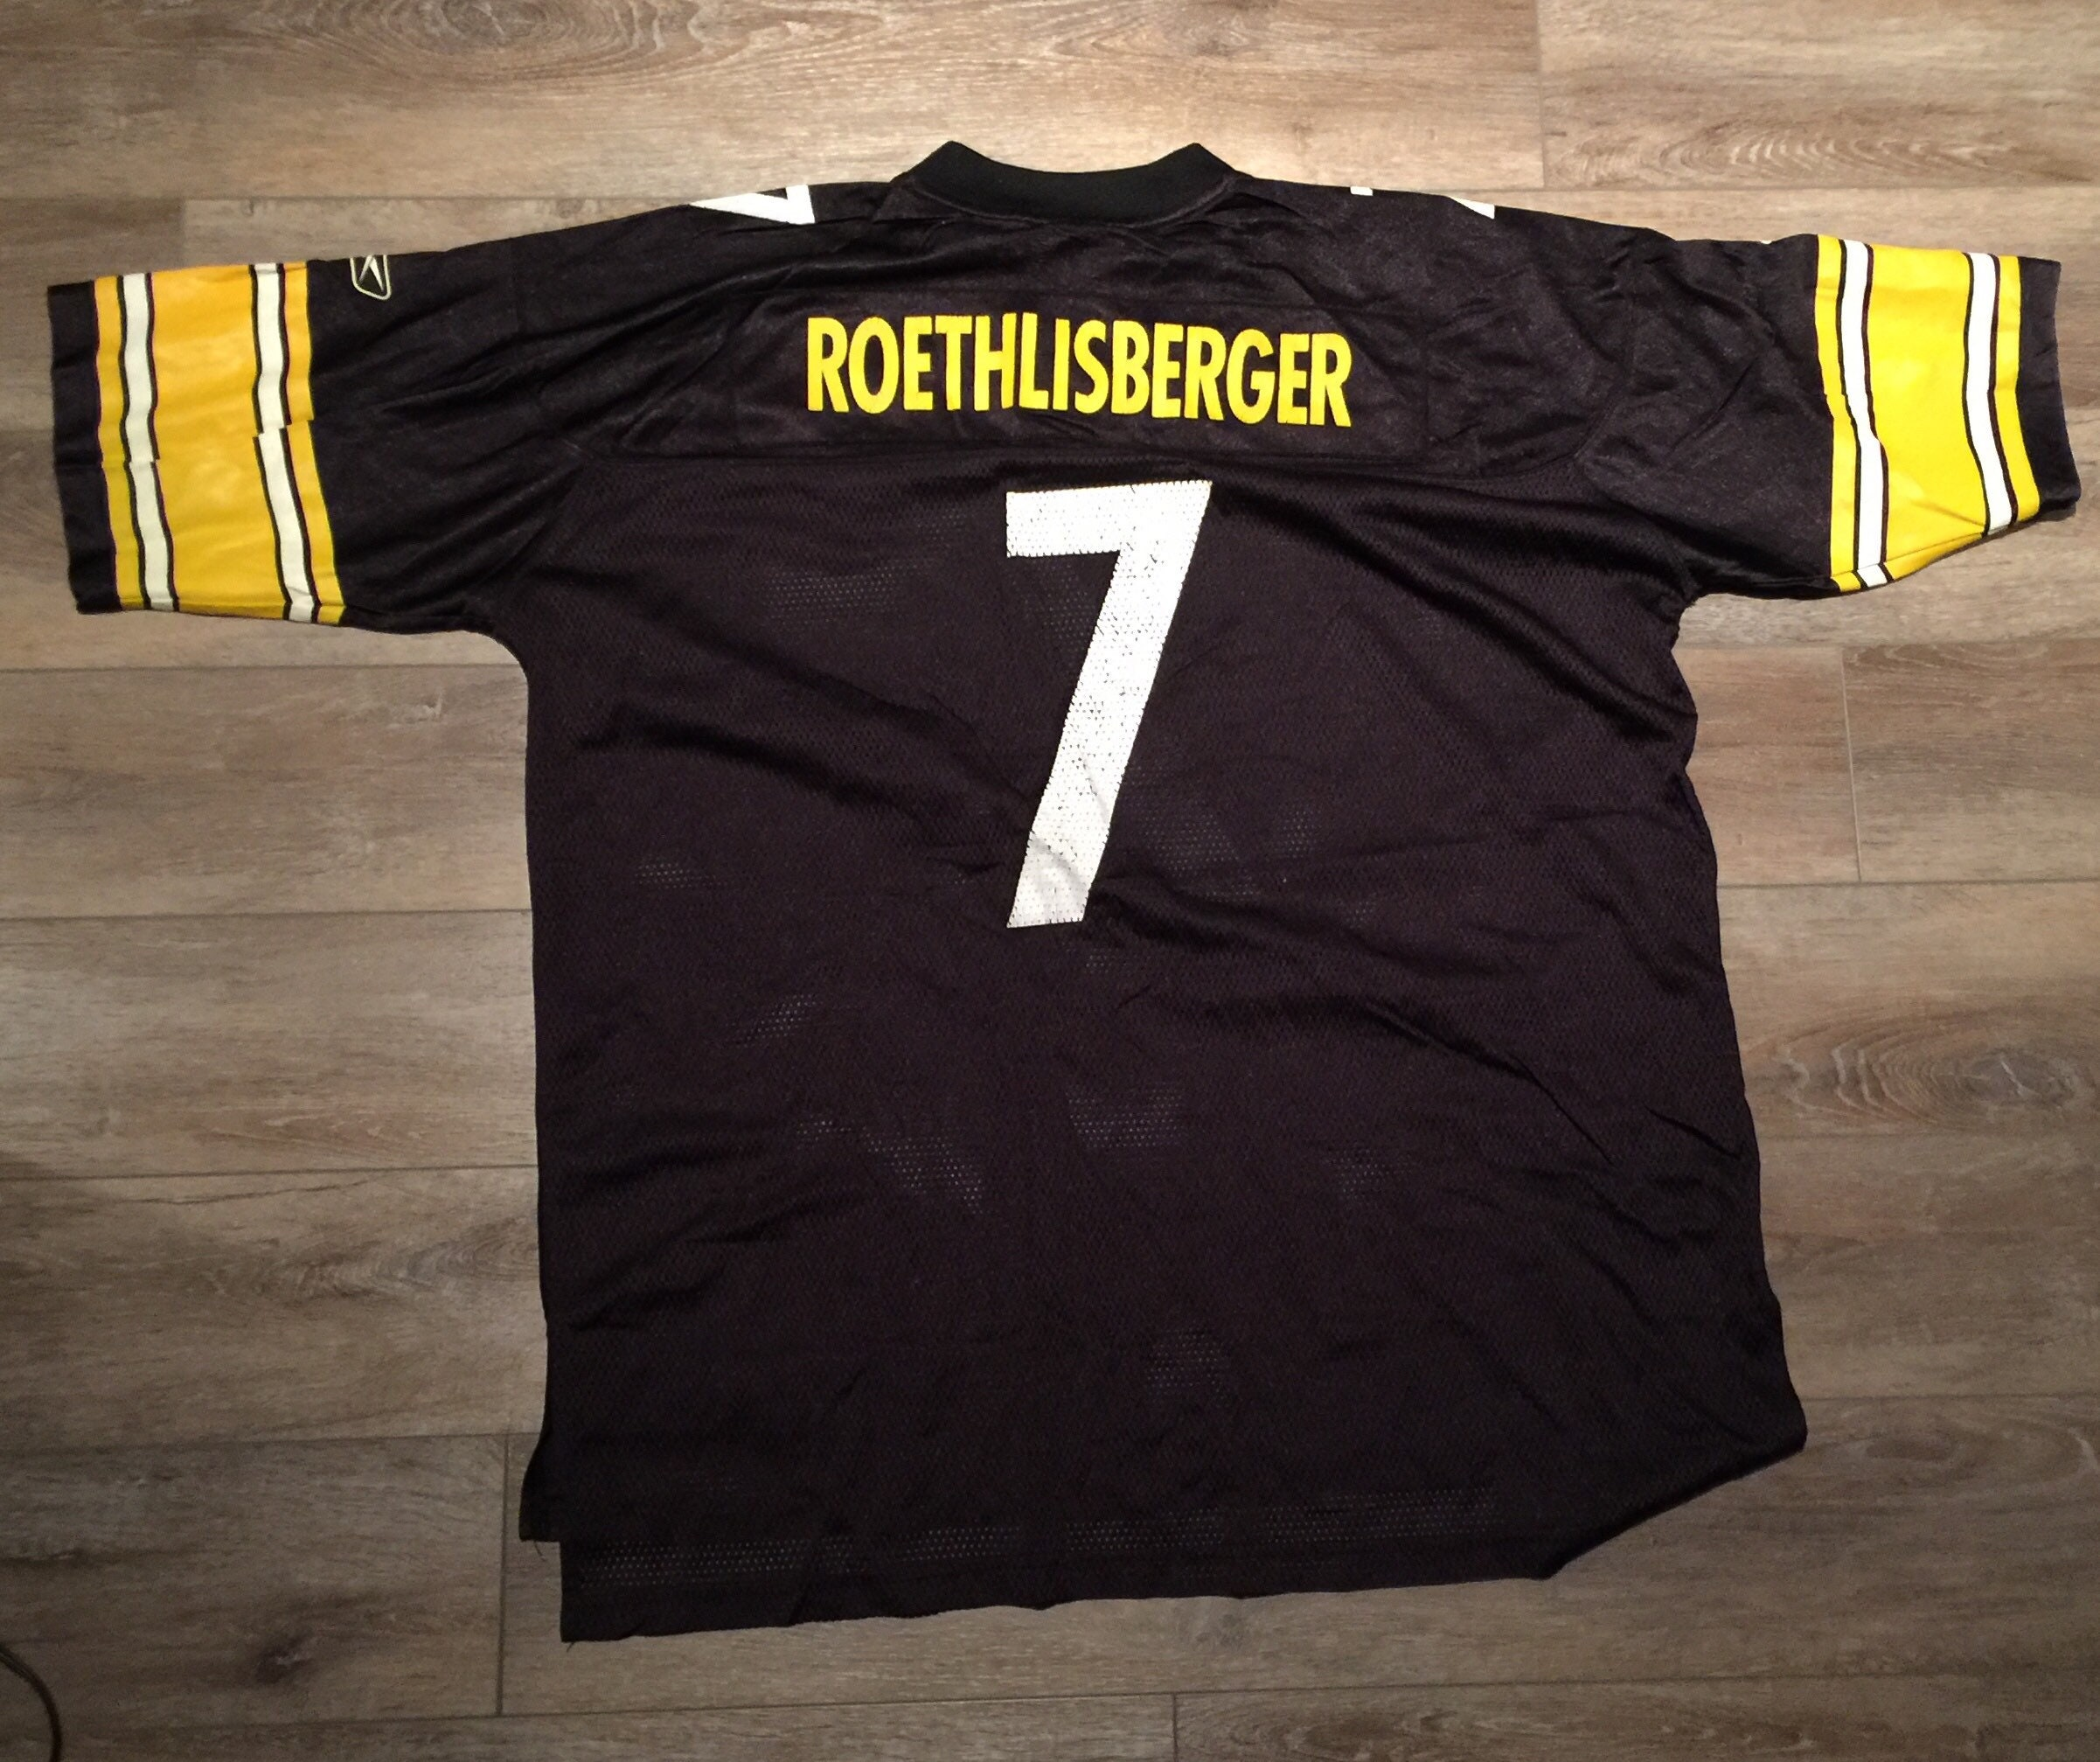 new products 64a72 6a516 Ben Roethlisberger Pittsburgh Steelers jersey